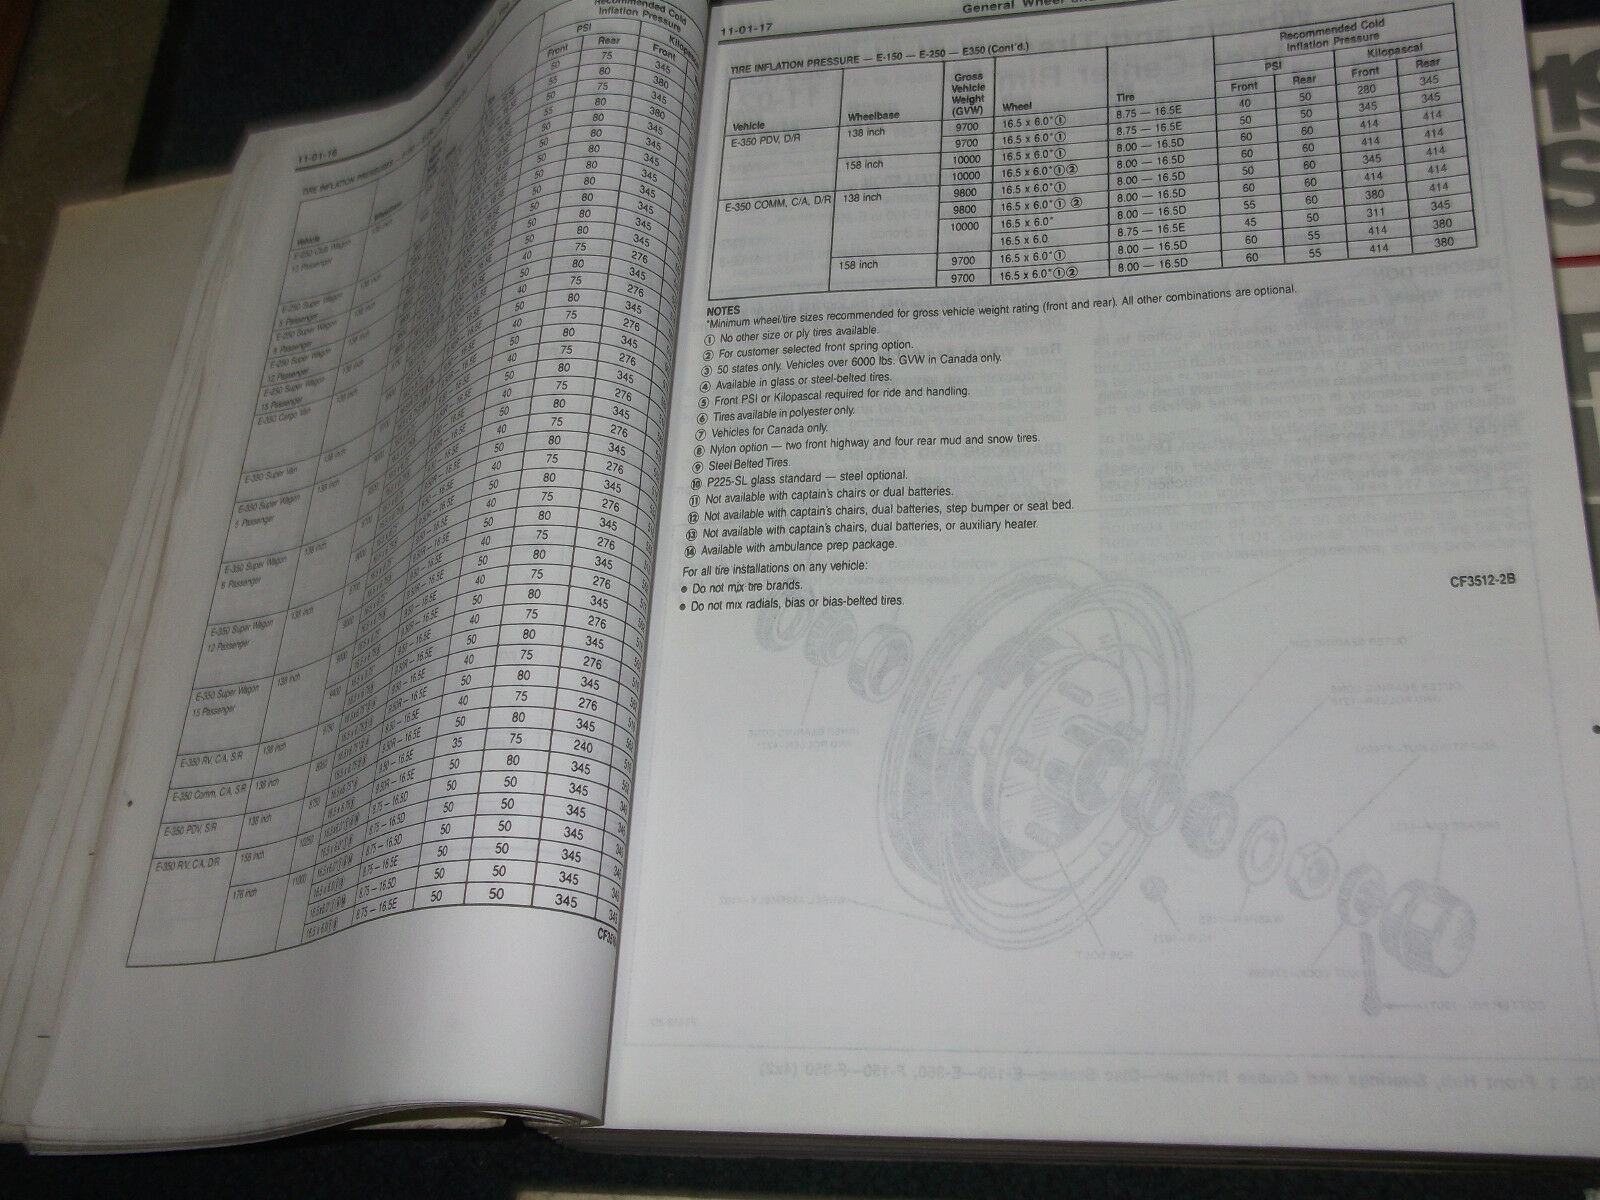 1984 Ford F-150 F150 250 350 F350 Bronco Truck Service Shop Repair Manual Set image 3